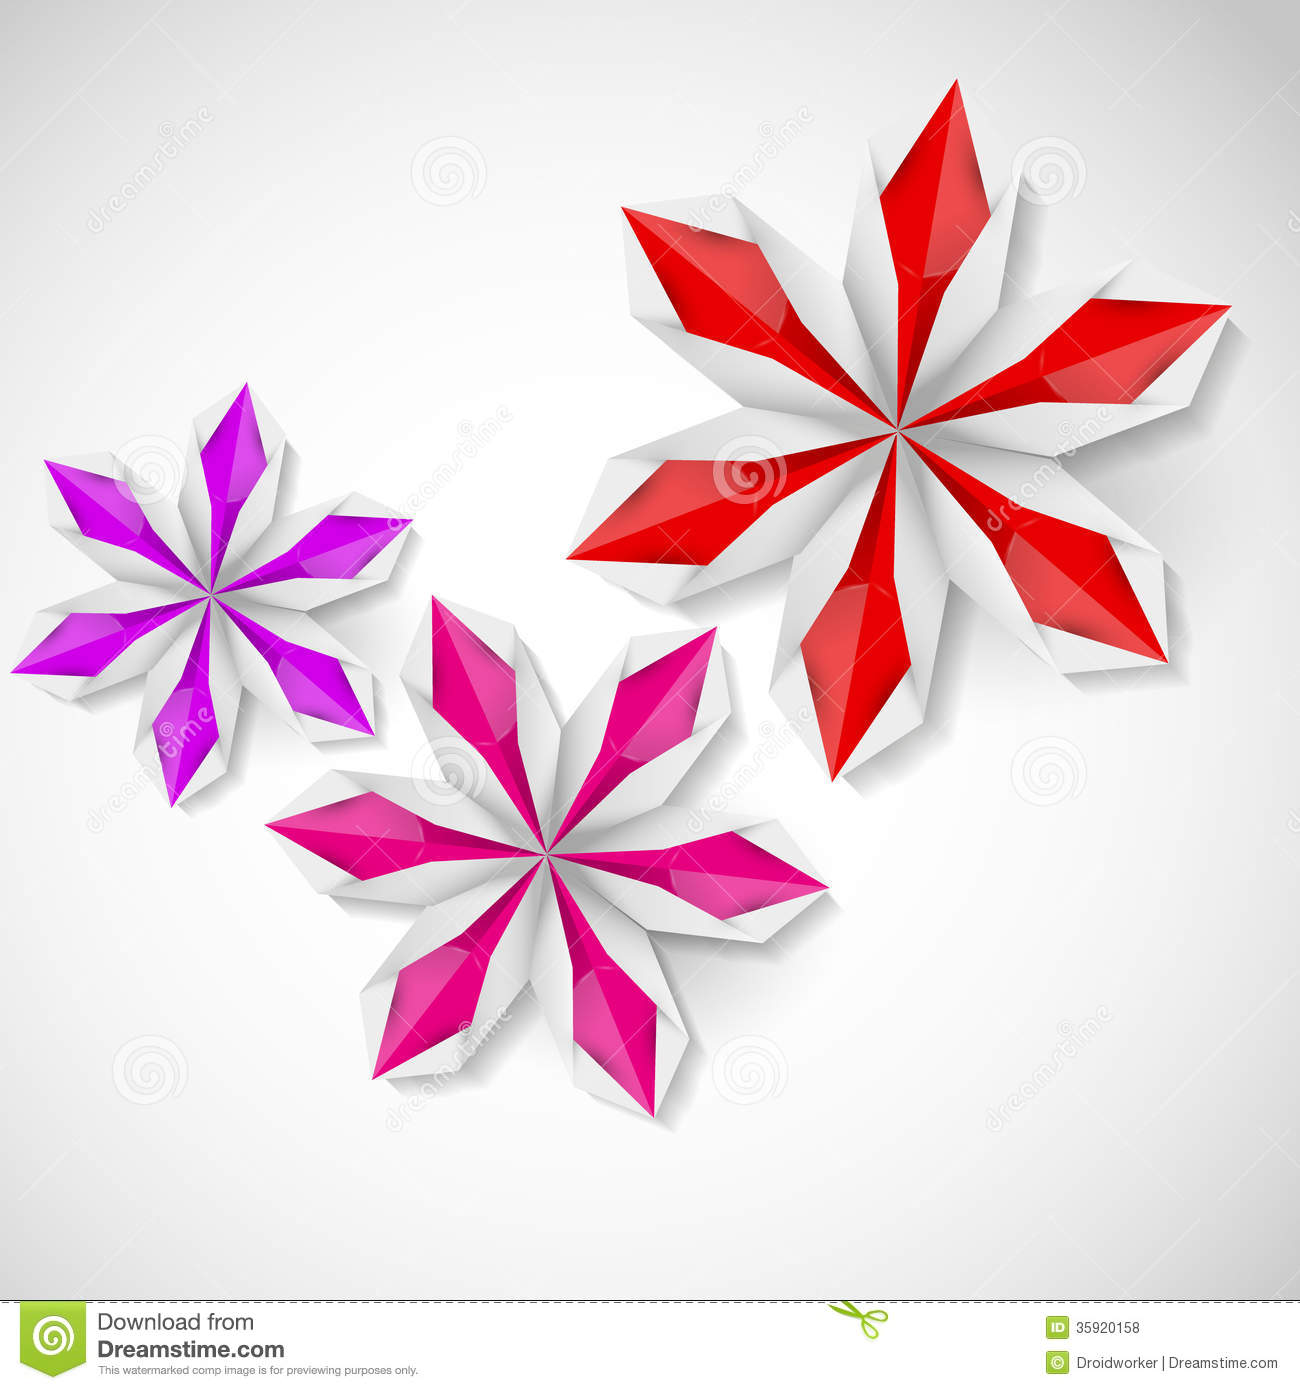 op art floral graphics - photo #30